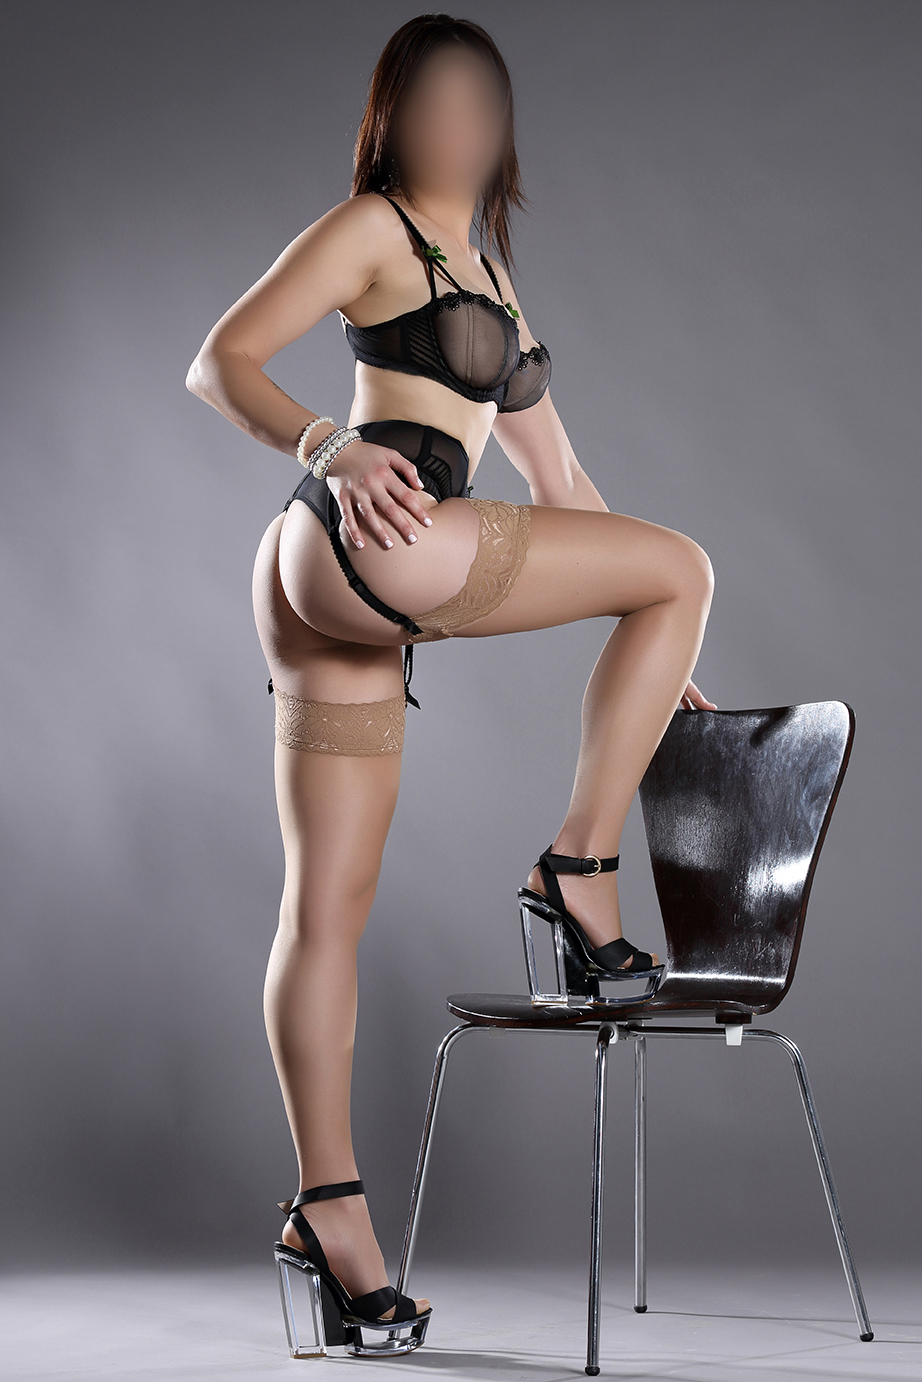 New pics of stunning Leeds escort Bonnie just added x